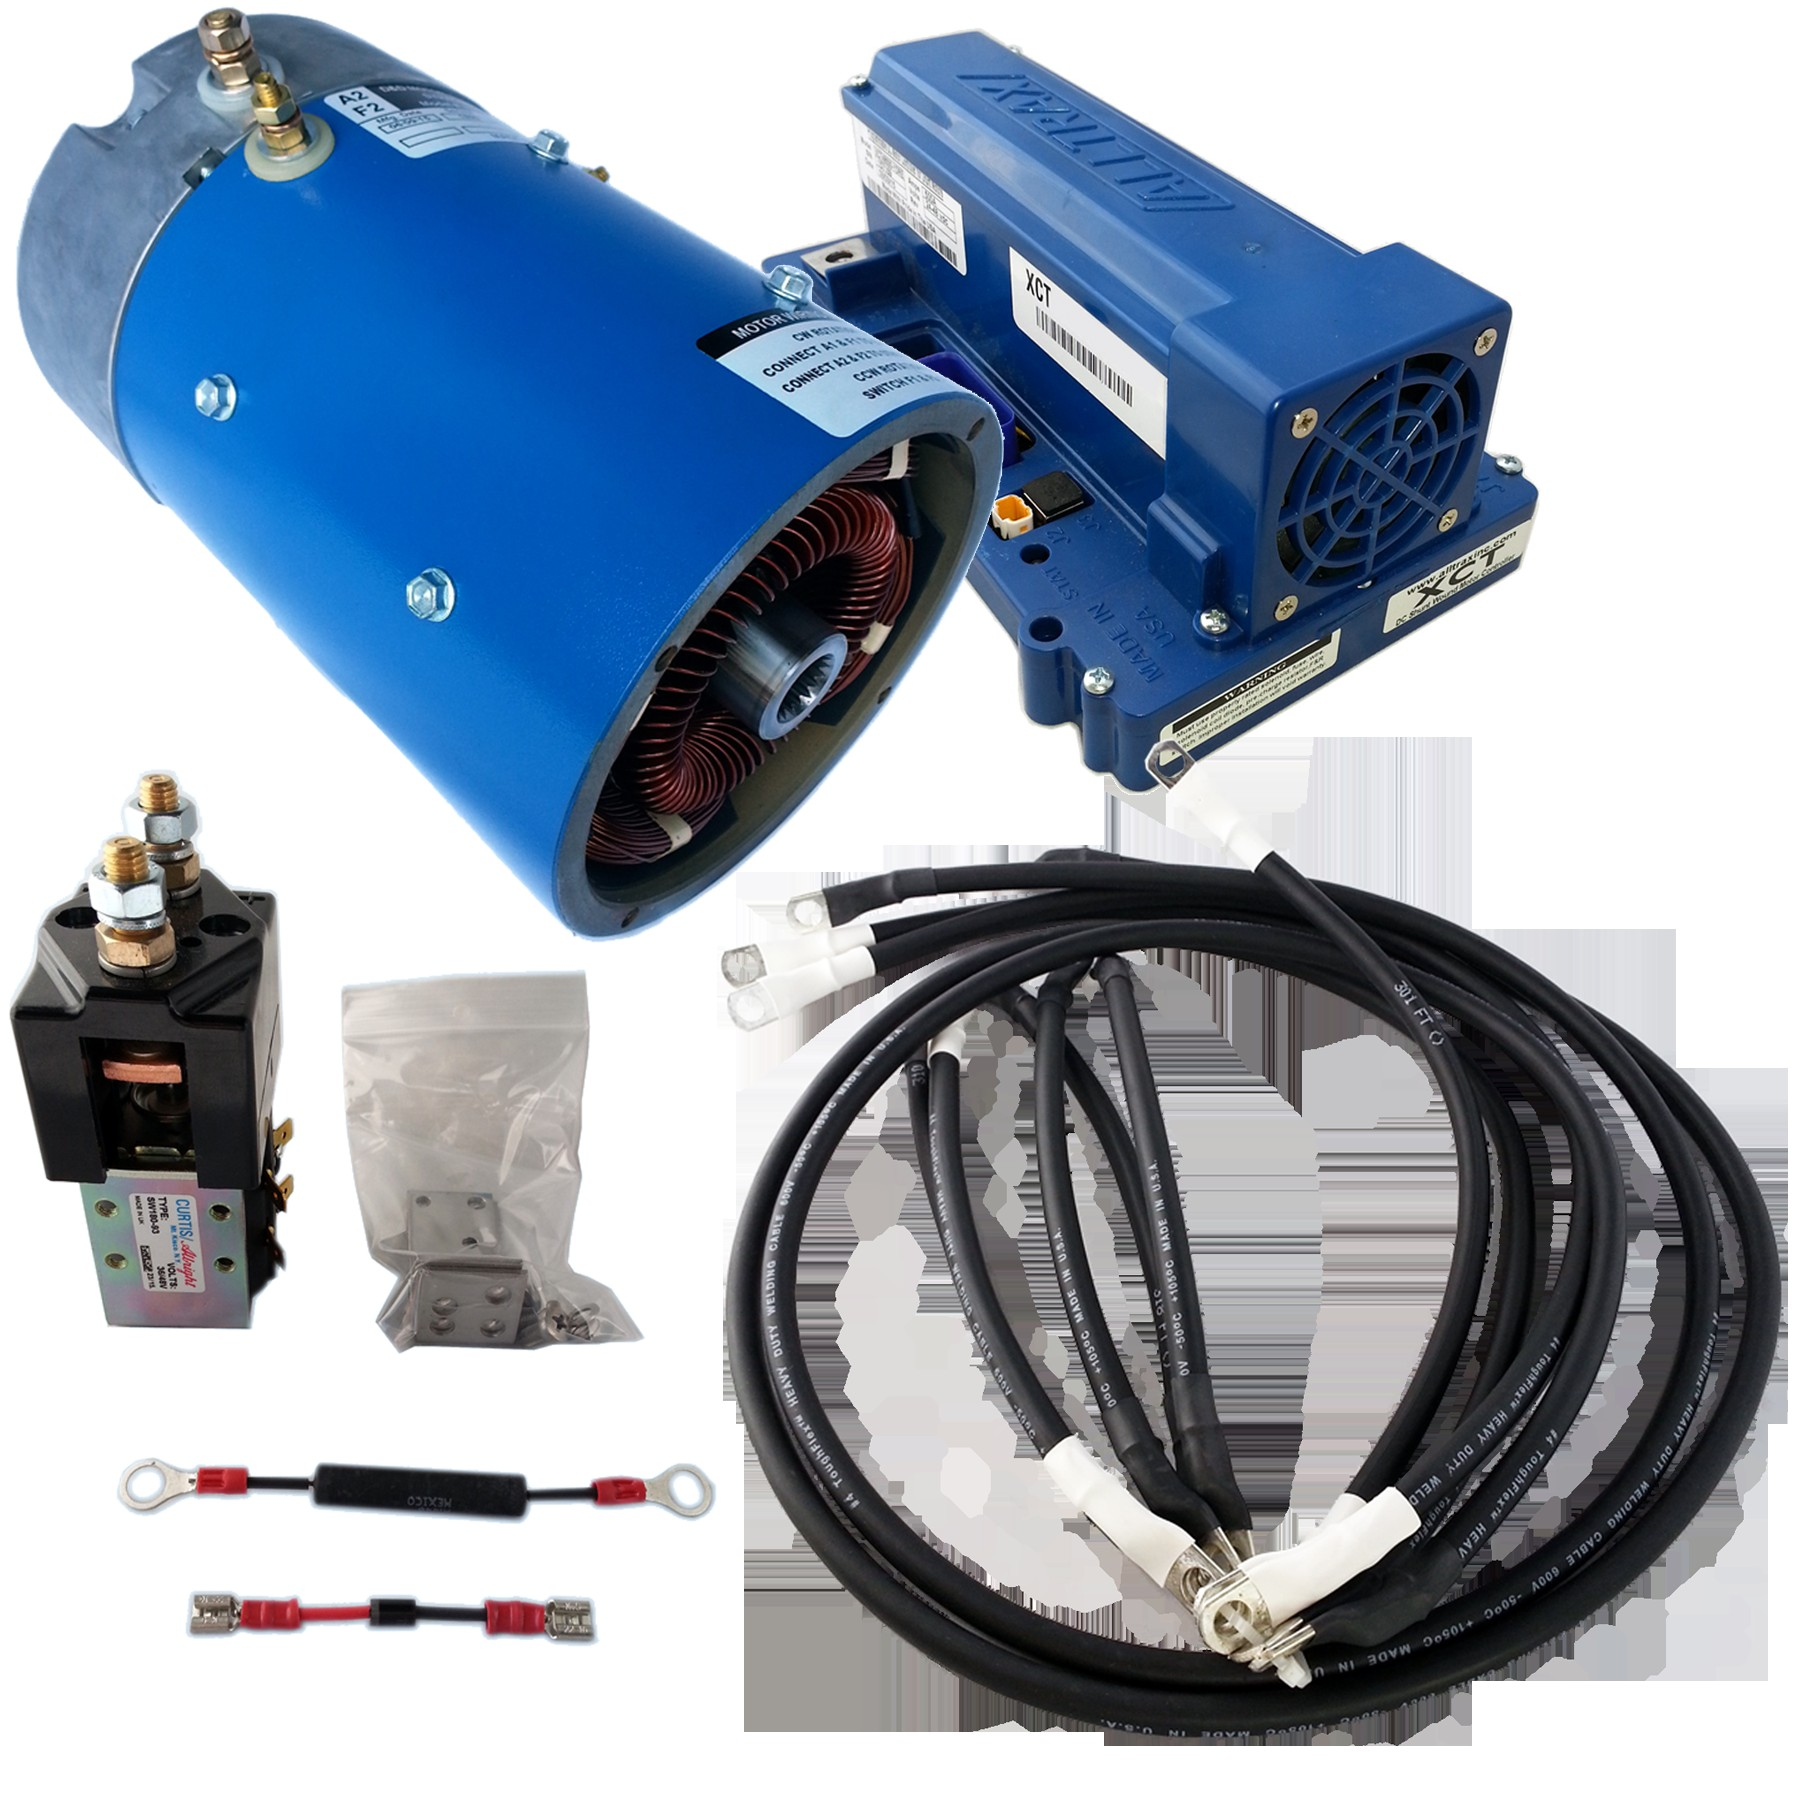 Ezgo 1989 Gas Engine Wiring Dc Motors Made In the Usa Range 12 Volt Dc Motors Thru 144 Of Ezgo 1989 Gas Engine Wiring